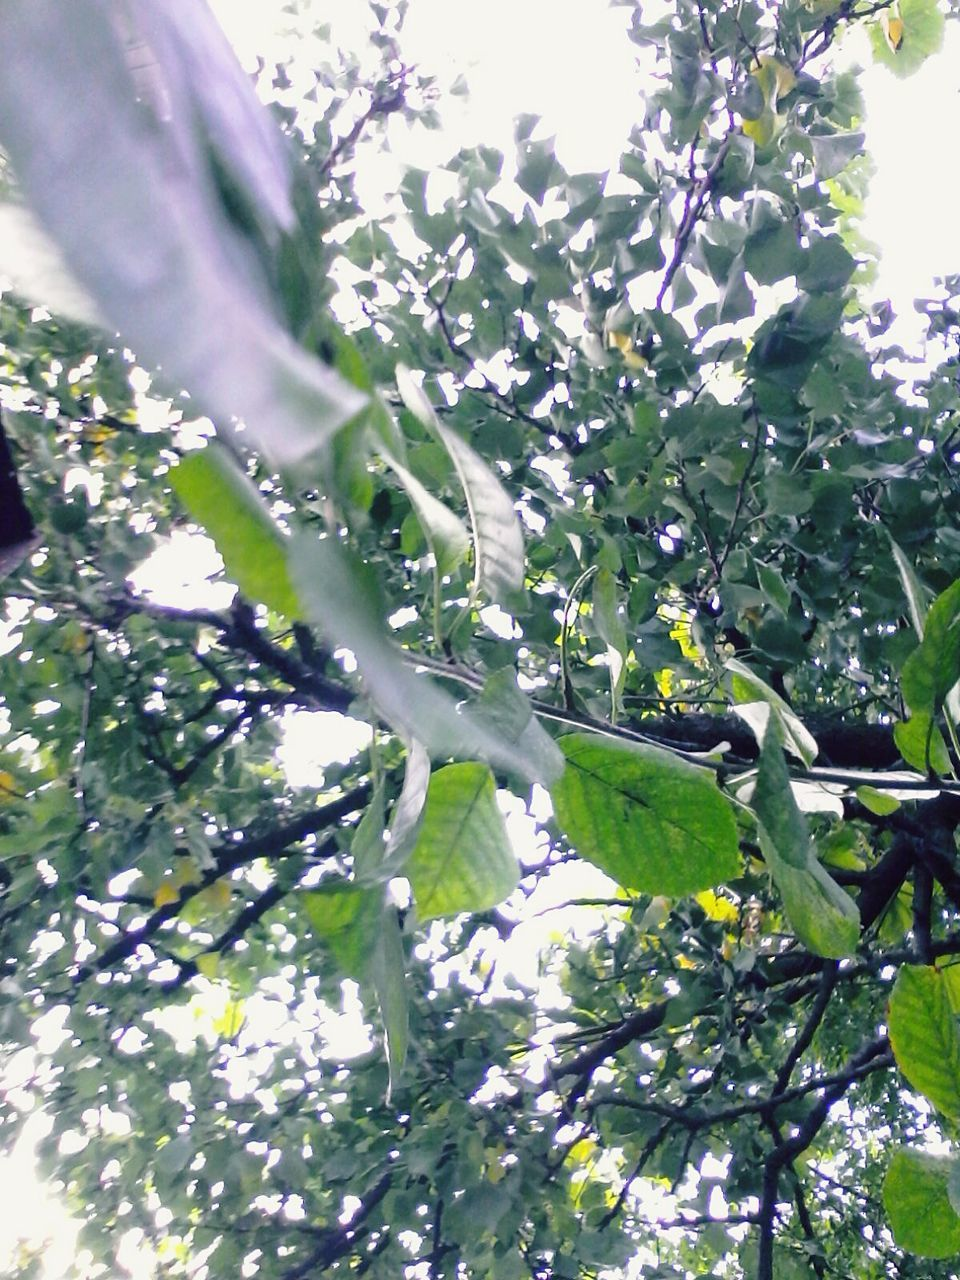 tree, growth, low angle view, branch, nature, day, beauty in nature, no people, green color, leaf, outdoors, freshness, plant, flower, hanging, fragility, close-up, sky